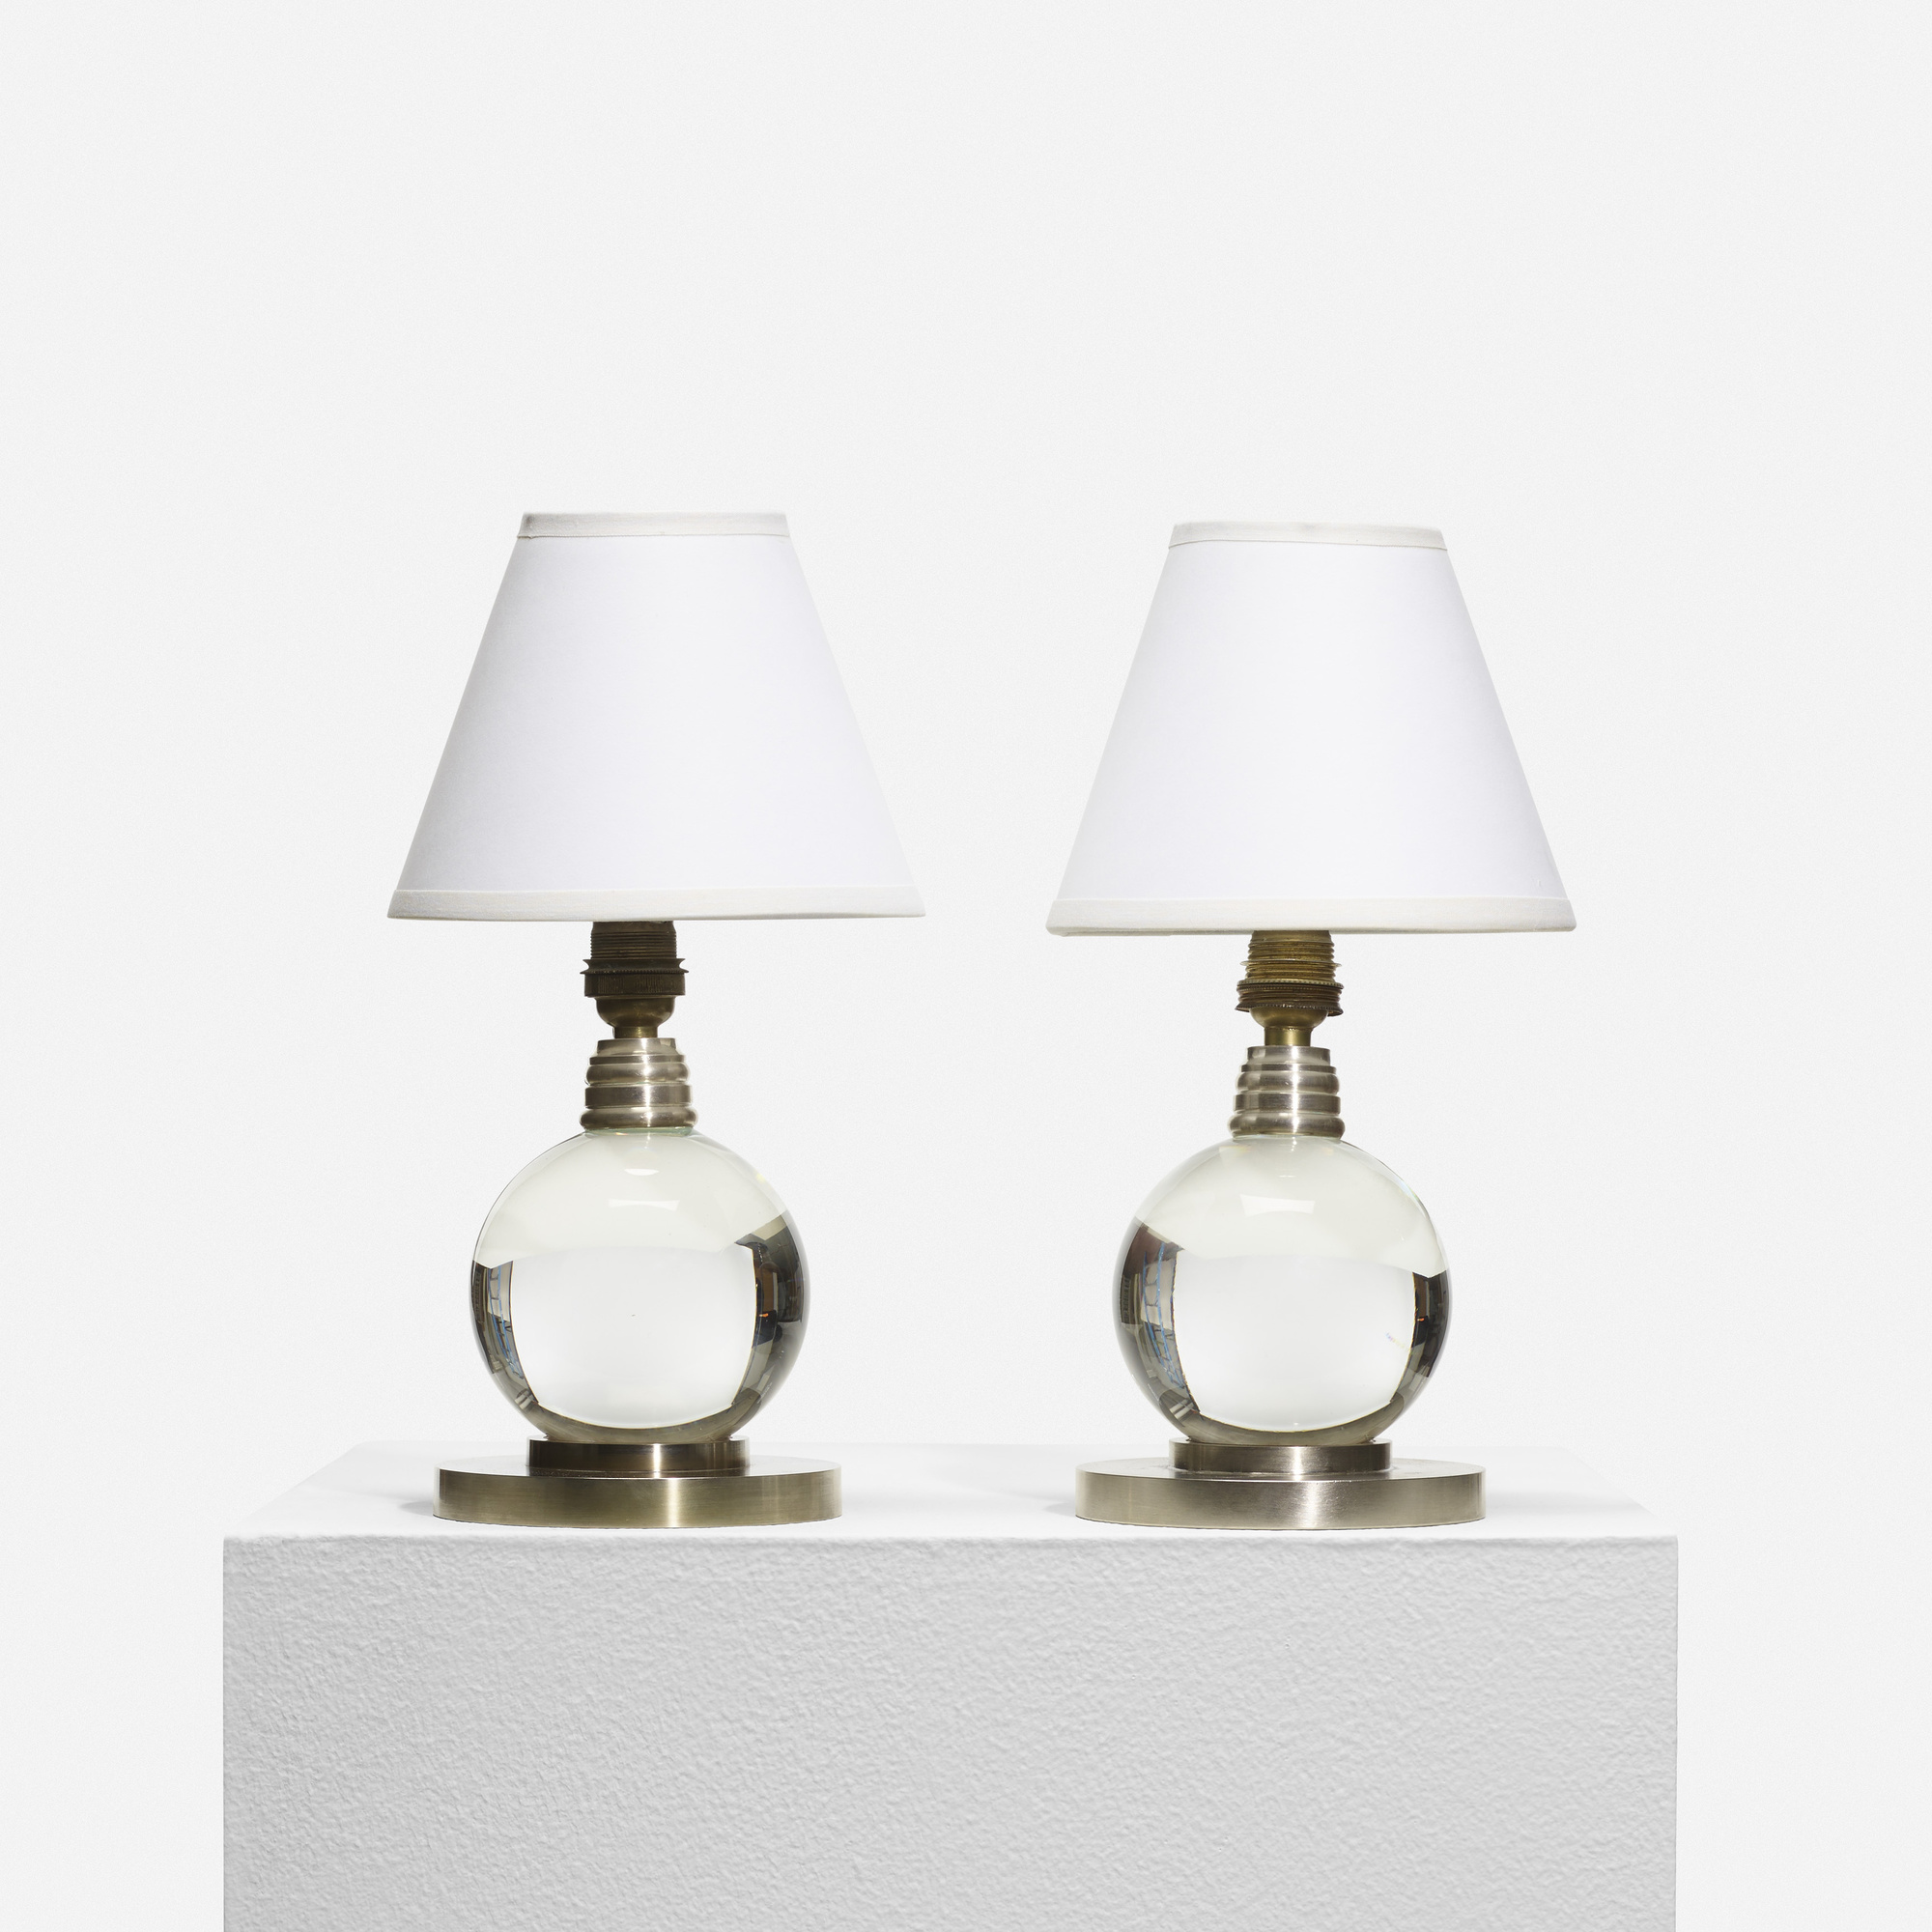 300: Jacques Adnet / table lamps model 7706, pair (1 of 2)